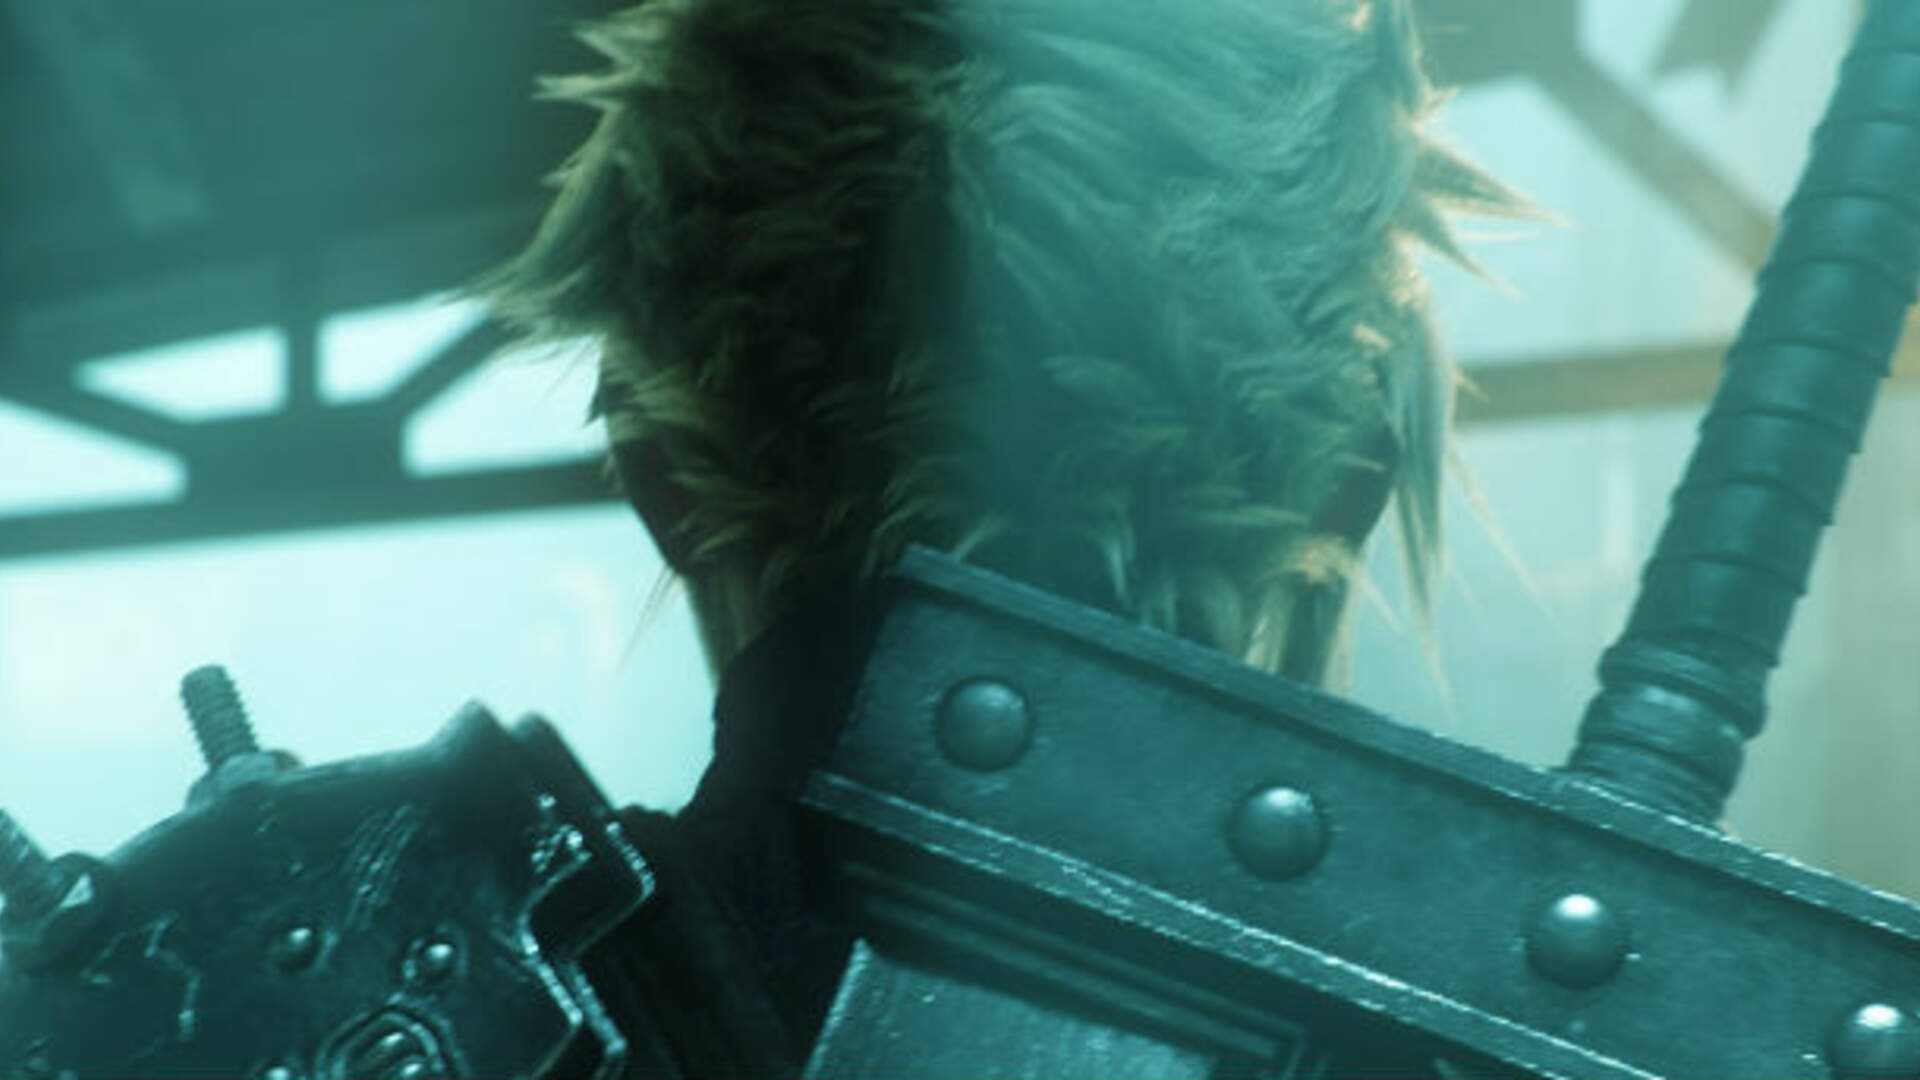 10 Things We Learned From Final Fantasy VII: An Oral History